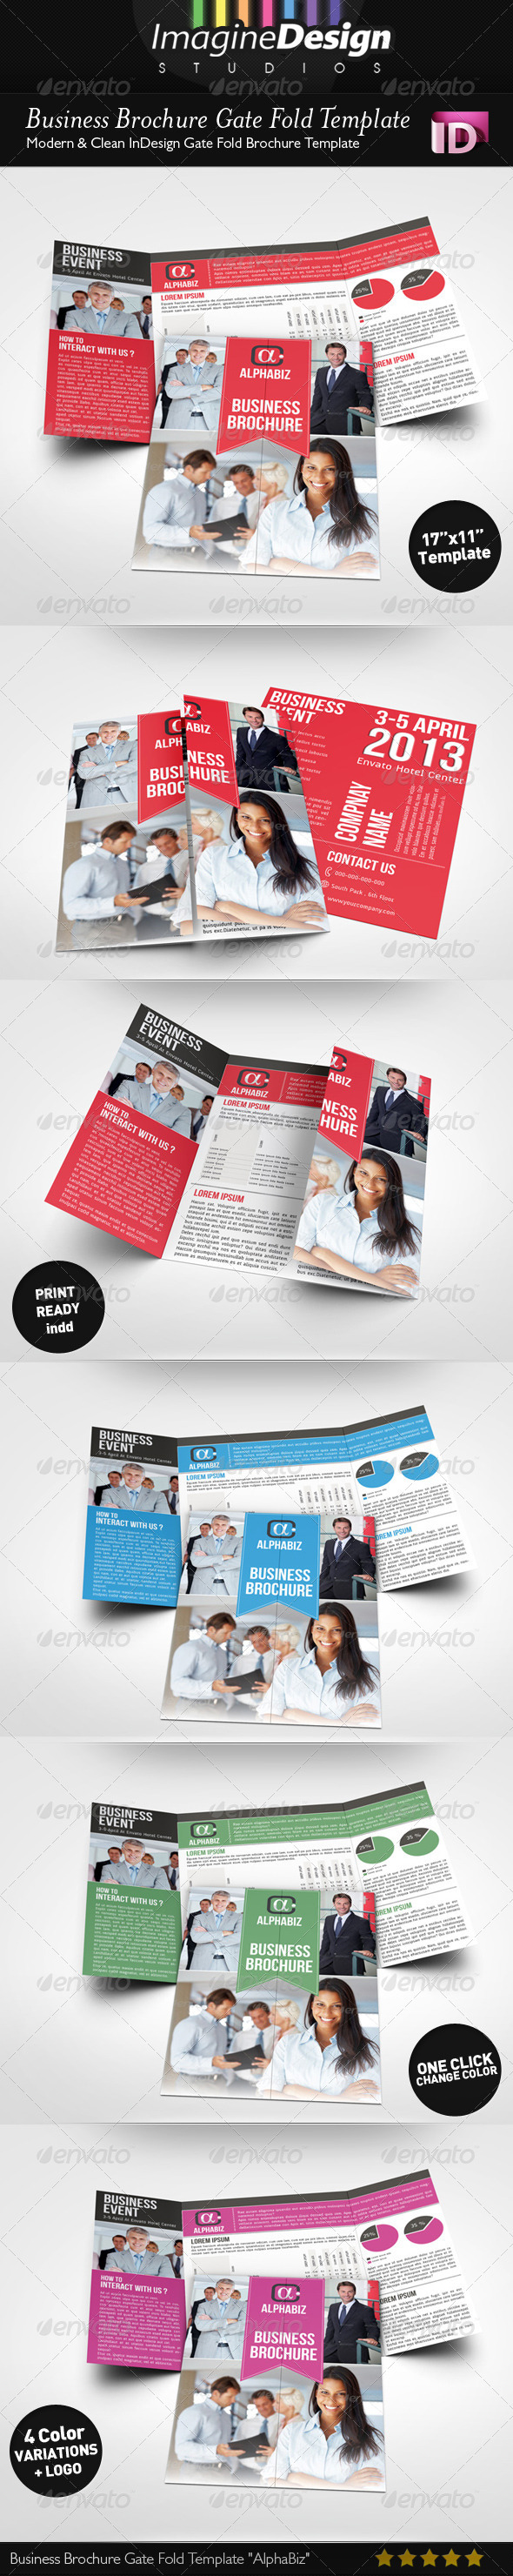 Business brochure gate fold template alphabiz by bagera for Gate fold brochure template indesign